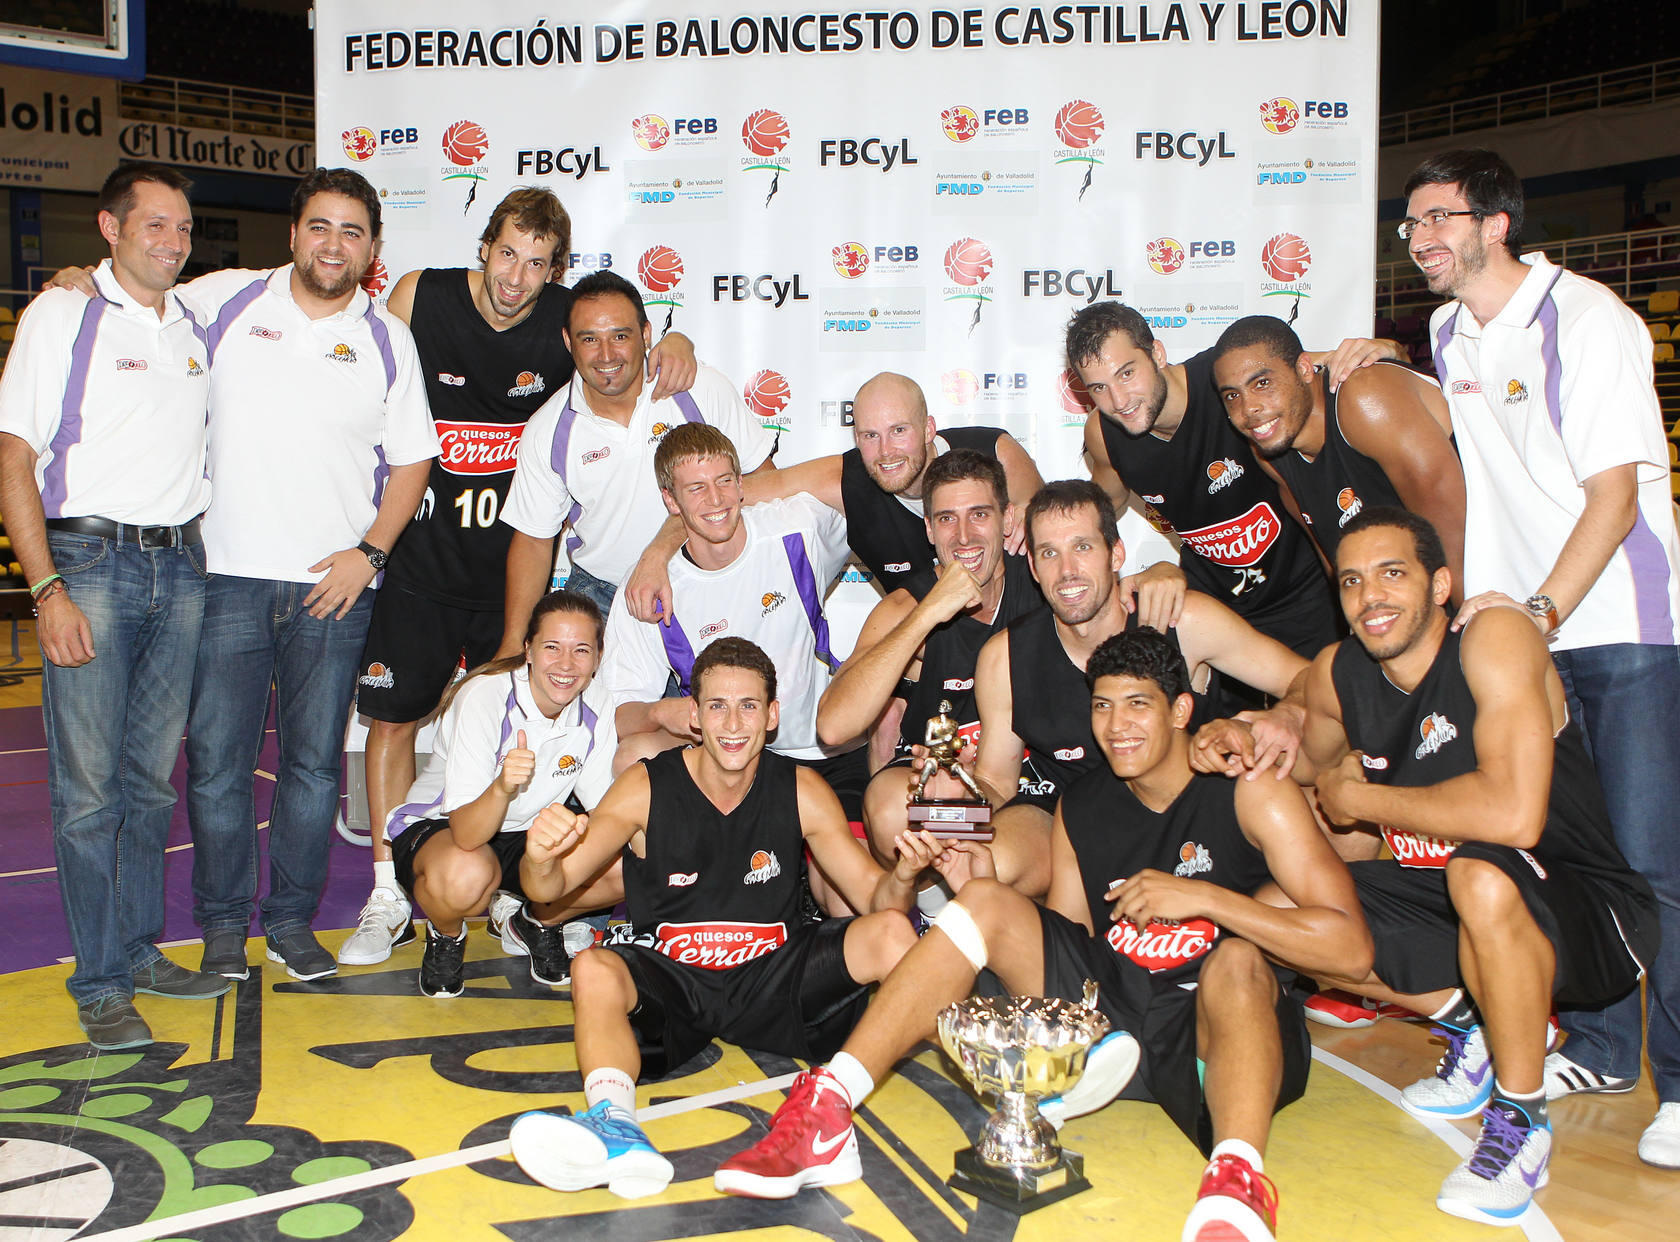 Final Mascula de la Copa Castilla y Le&oacute;n de baloncesto